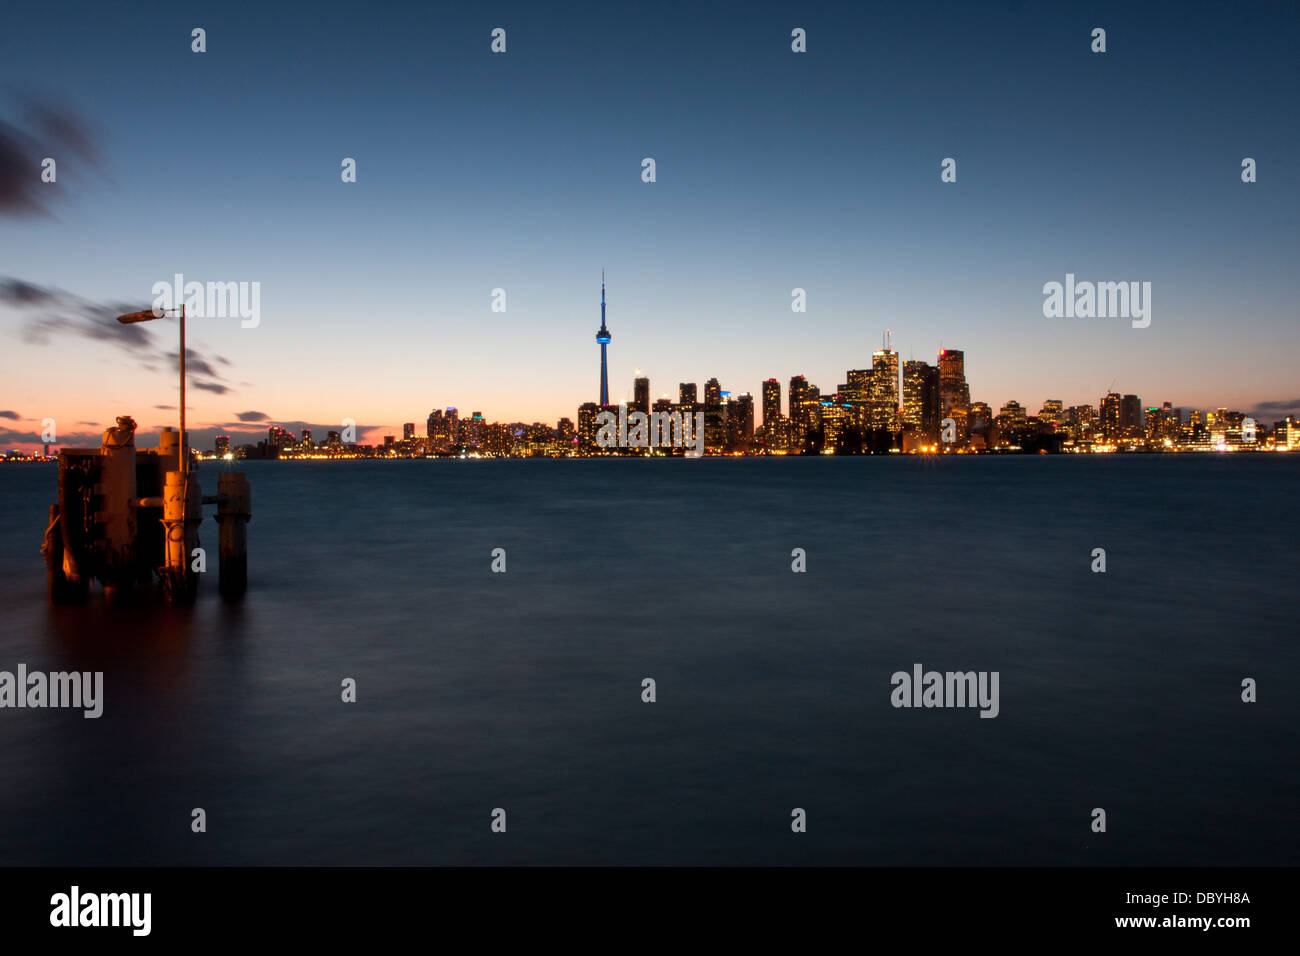 Toronto Skyline at night as viewed from Ward Island Ferry Dock. - Stock Image